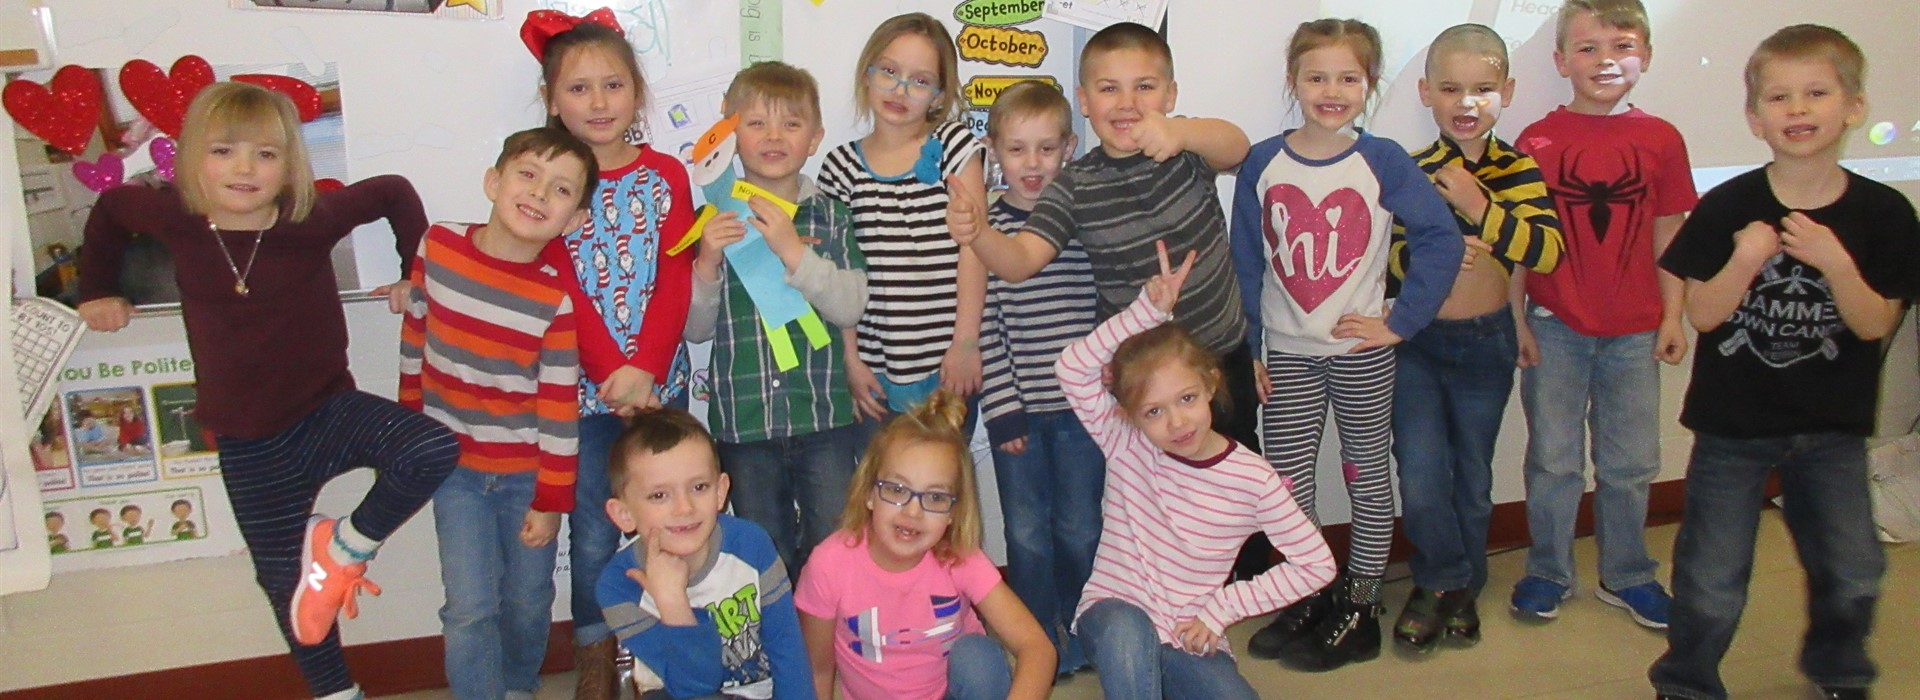 Silly Seuss Smiles in Stripes in Mrs. Cisler's Class.